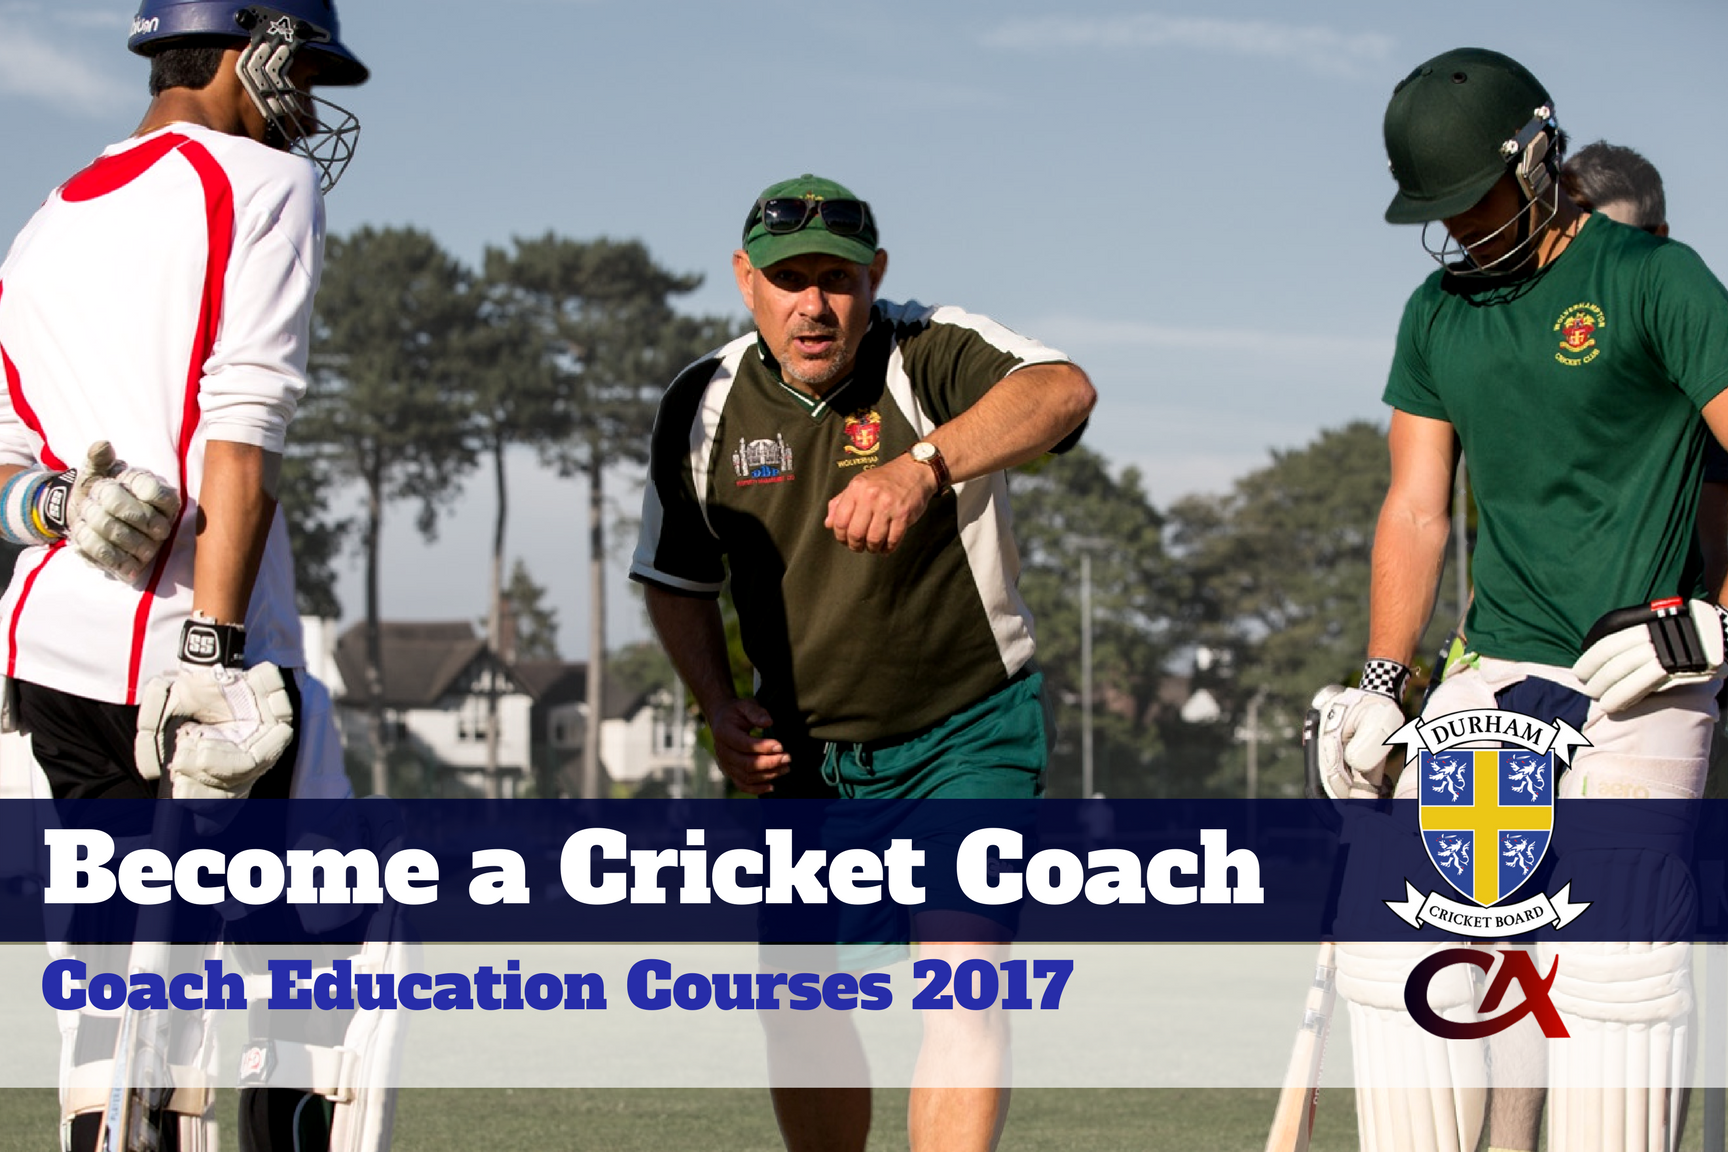 Coach_Education_Play-Cricket